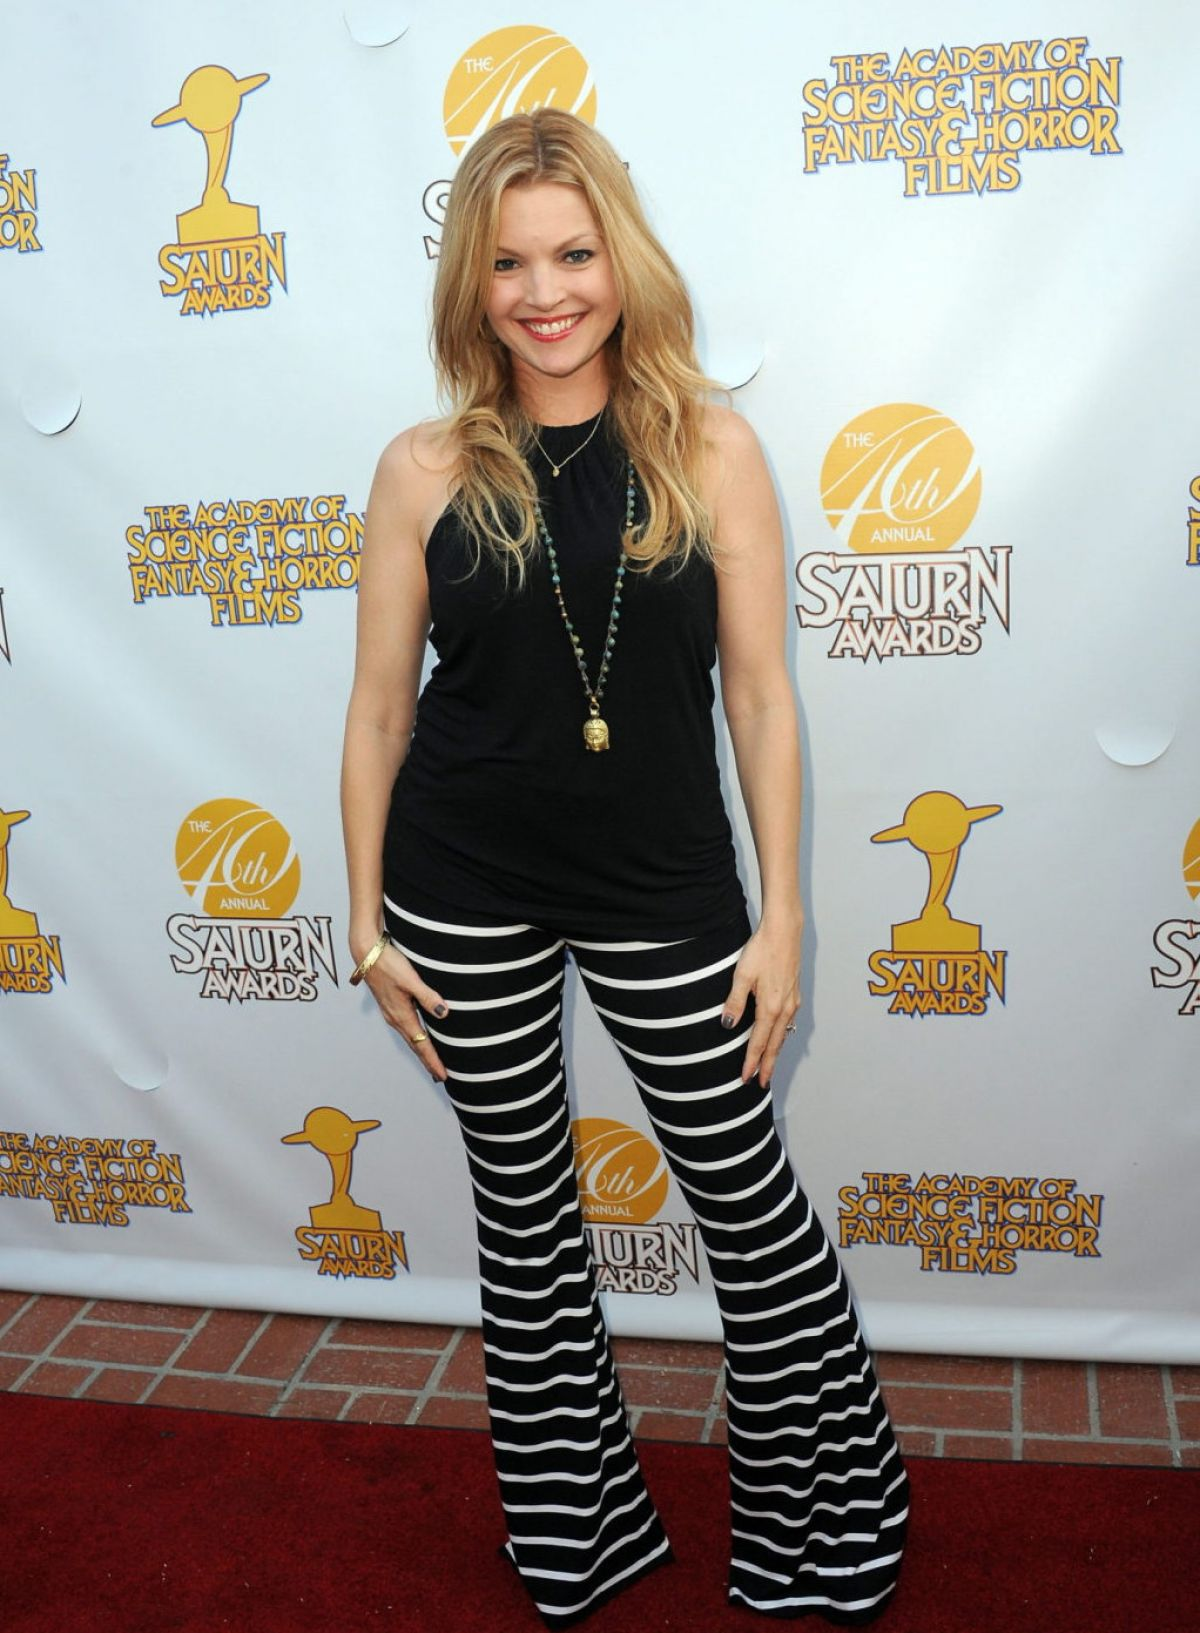 CLARE KRAMER at 2014 Saturn Awards in Burbank